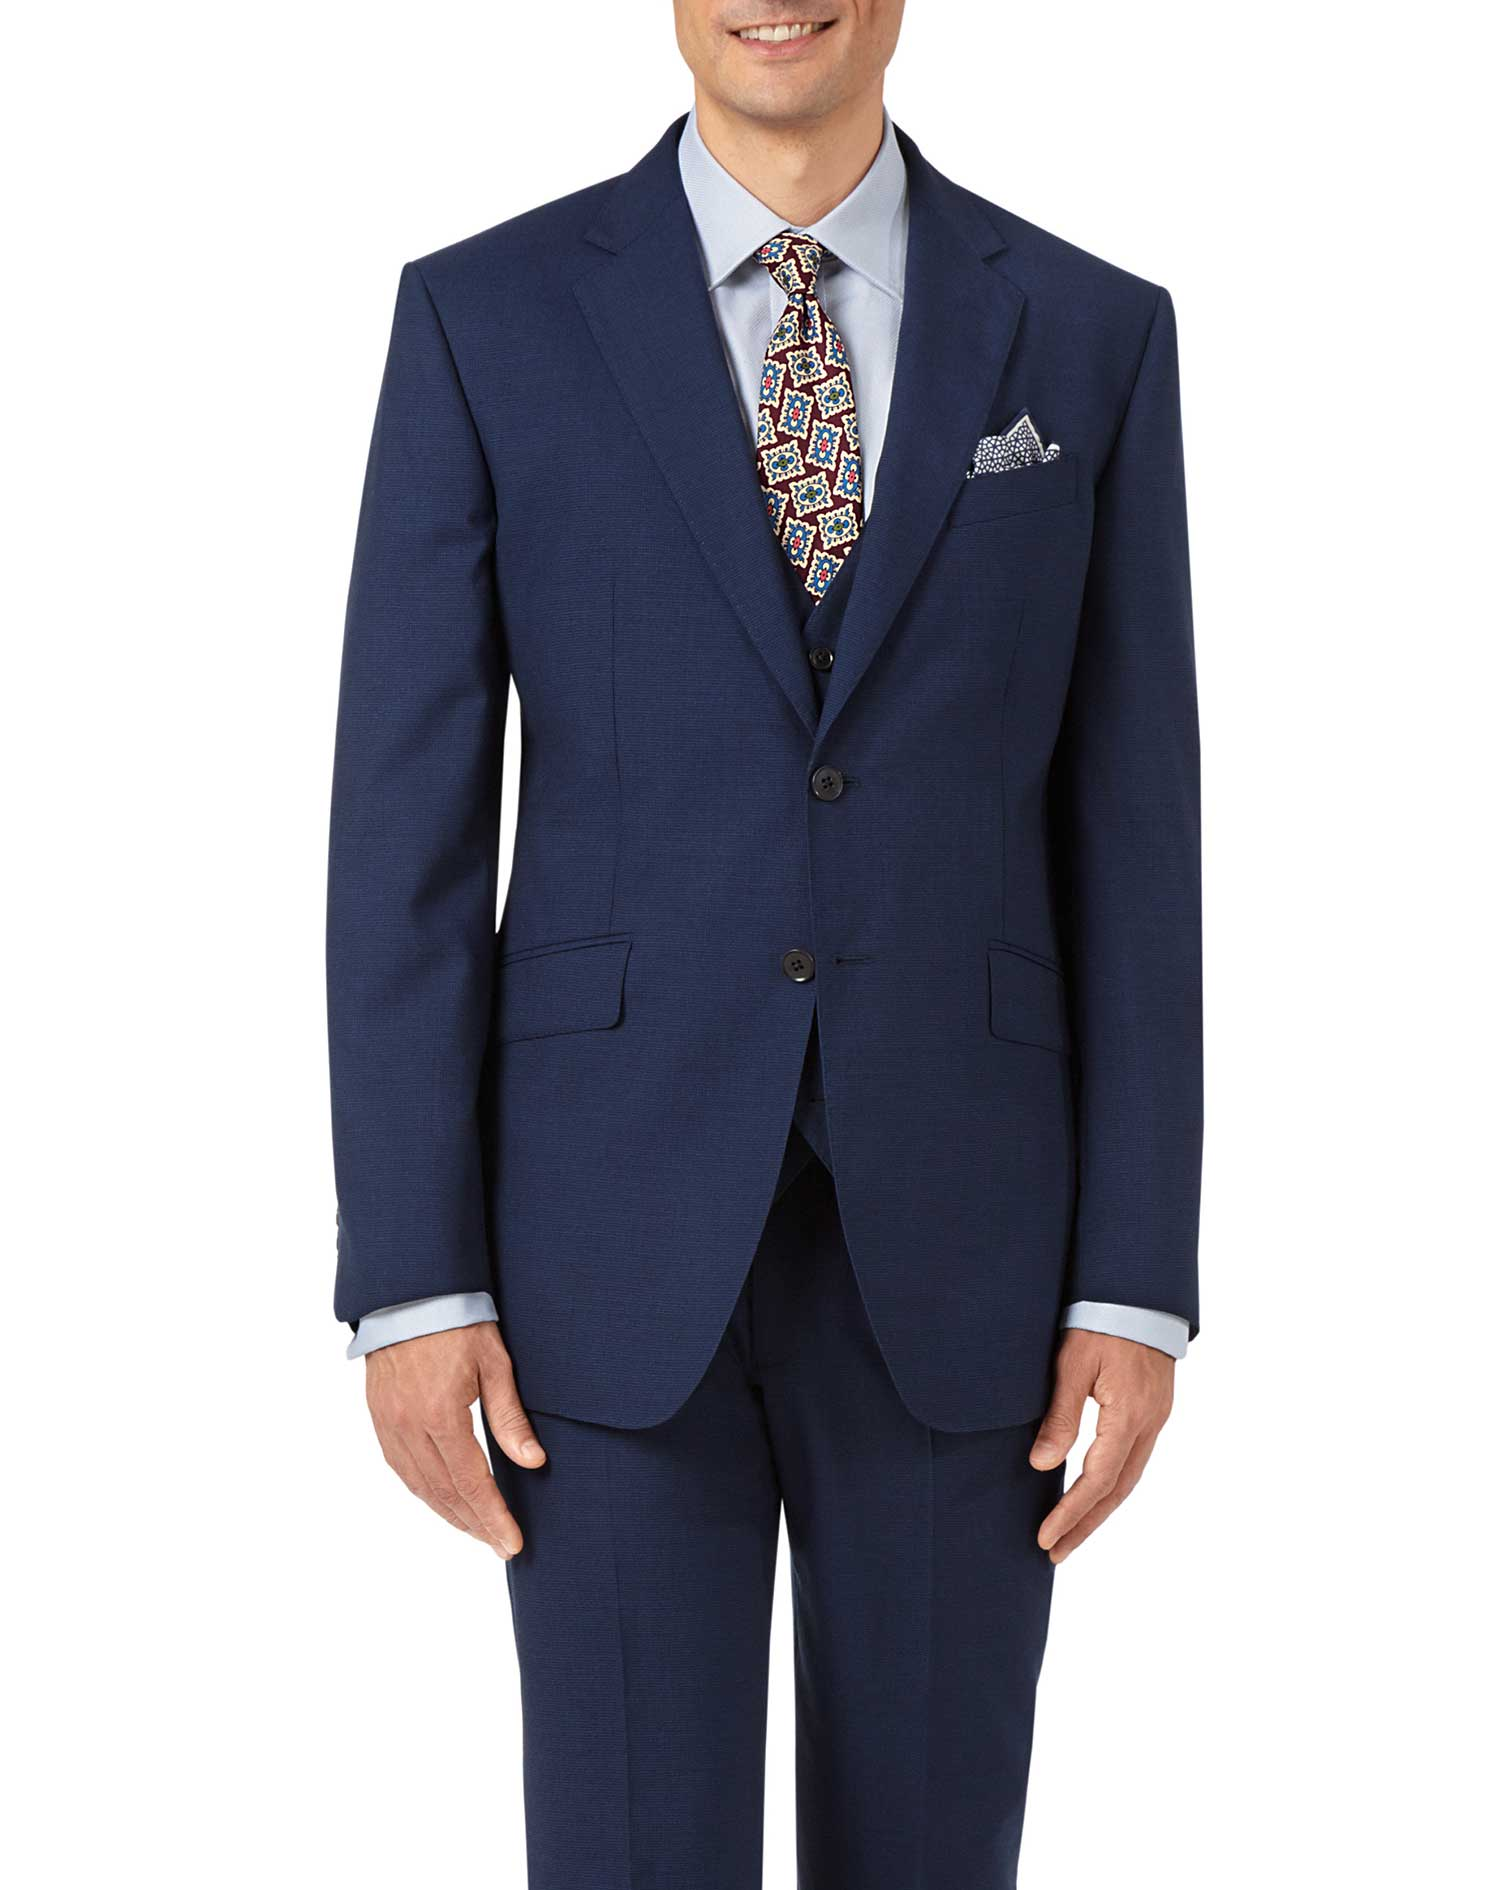 Indigo blue slim fit Panama puppytooth business suit jacket